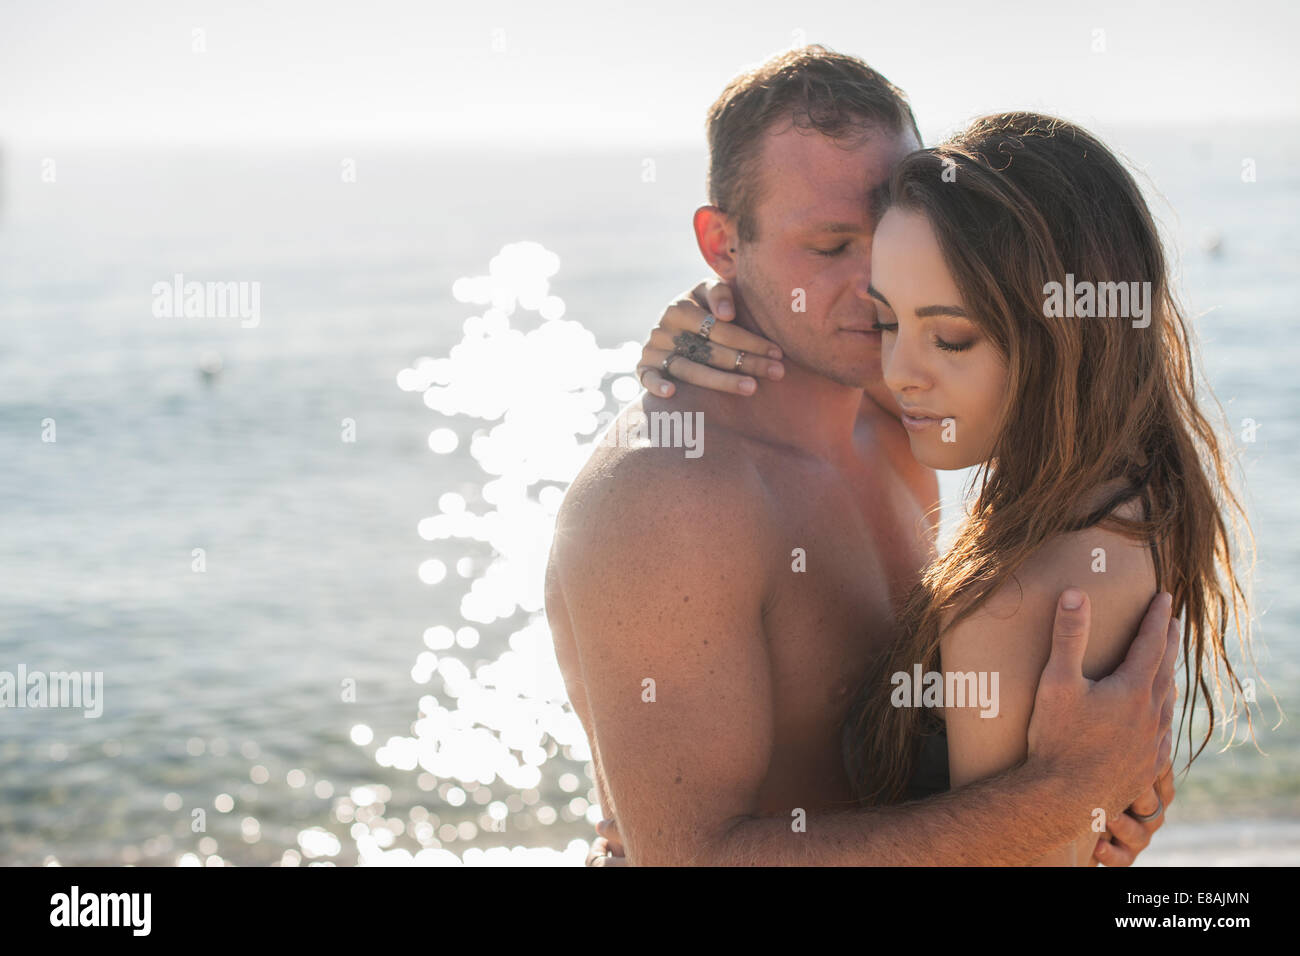 Romantic young couple embracing on beach, Castiadas, Sardinia, Italy - Stock Image